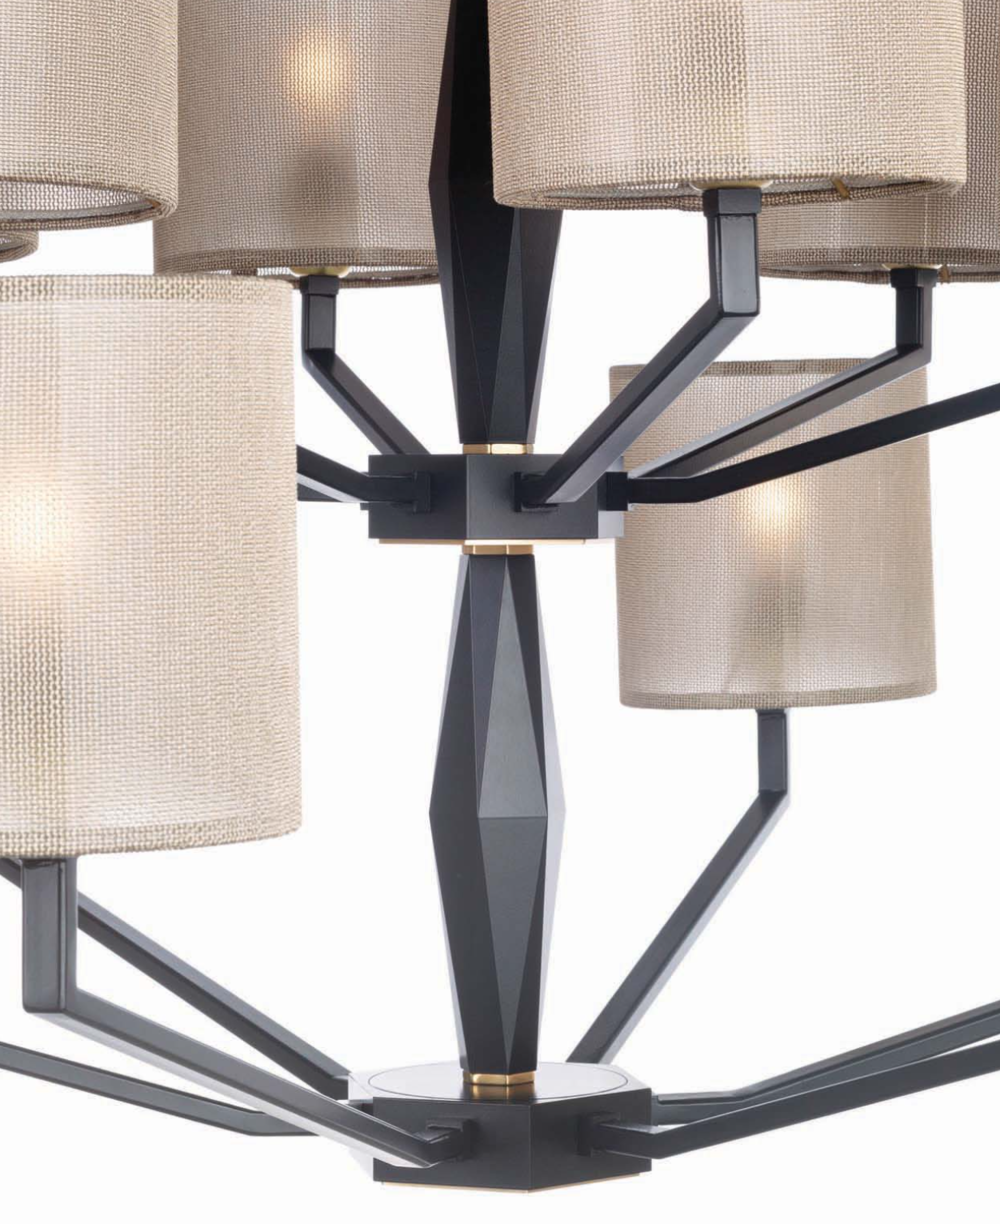 Officina Luce Top chandelier 12 lights detail | Masha Shapiro Agency.png